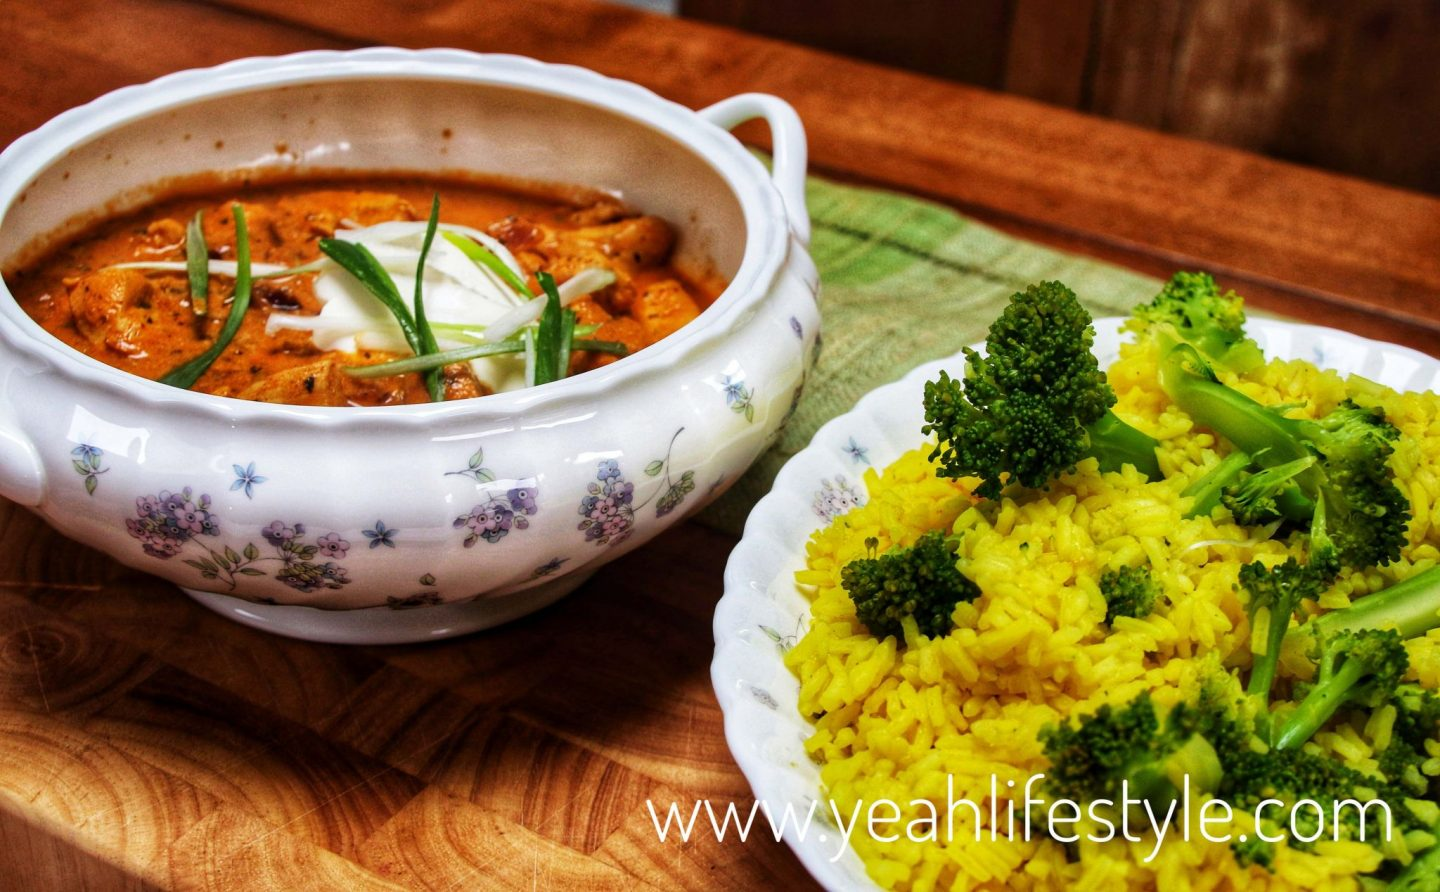 book-review-annabel-karmel-real-food-kids-love-butter-chicken-rice-tasty